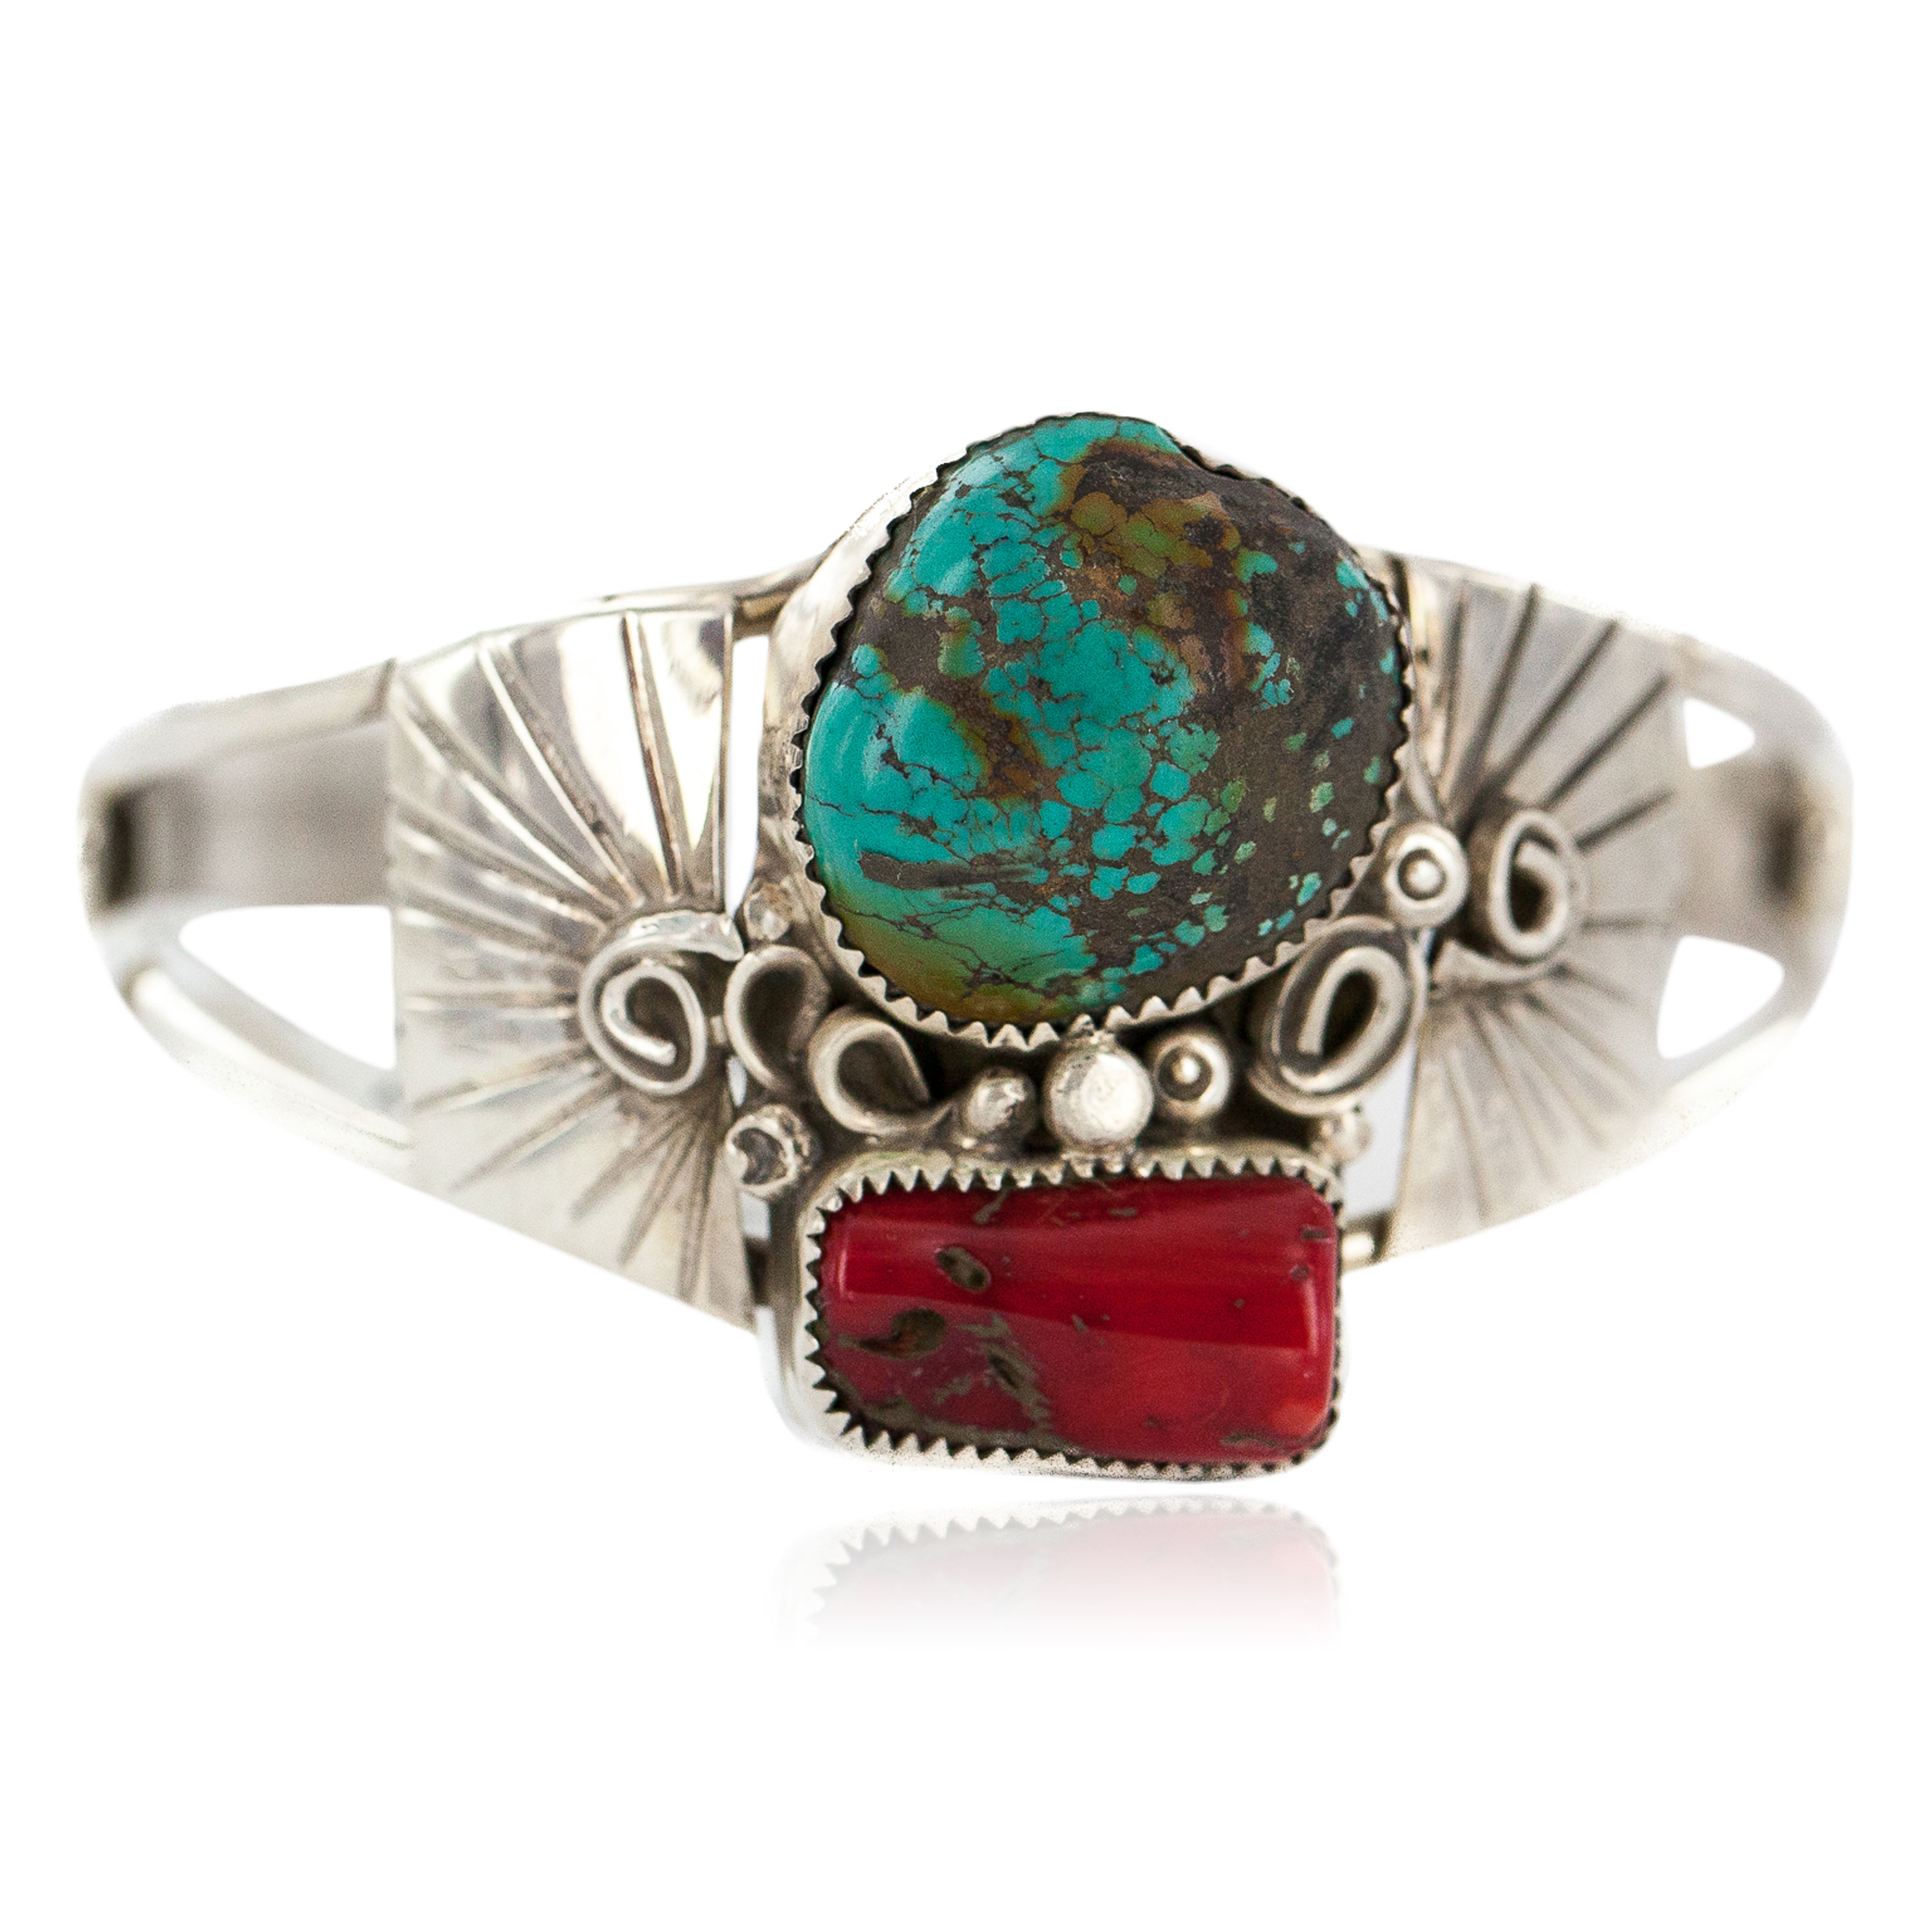 Certified Authentic .925 Sterling Silver Navajo Handmade Natural Turquoise Coral Native American Bracelet  1306 All Products NB160602214415 1306 (by LomaSiiva)